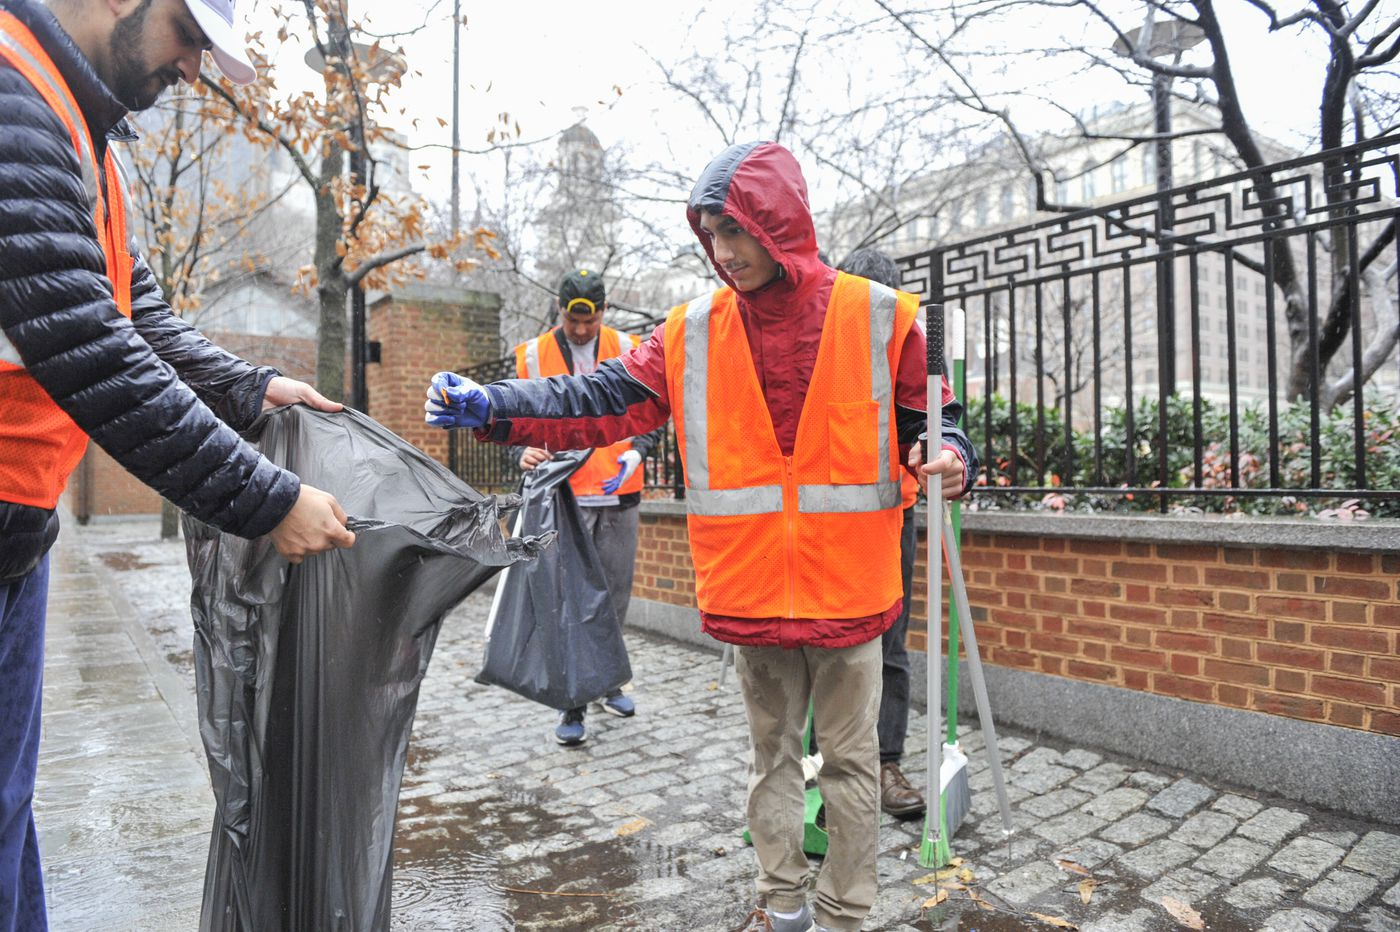 Muslim youth clean up Independence Mall amid government shutdown